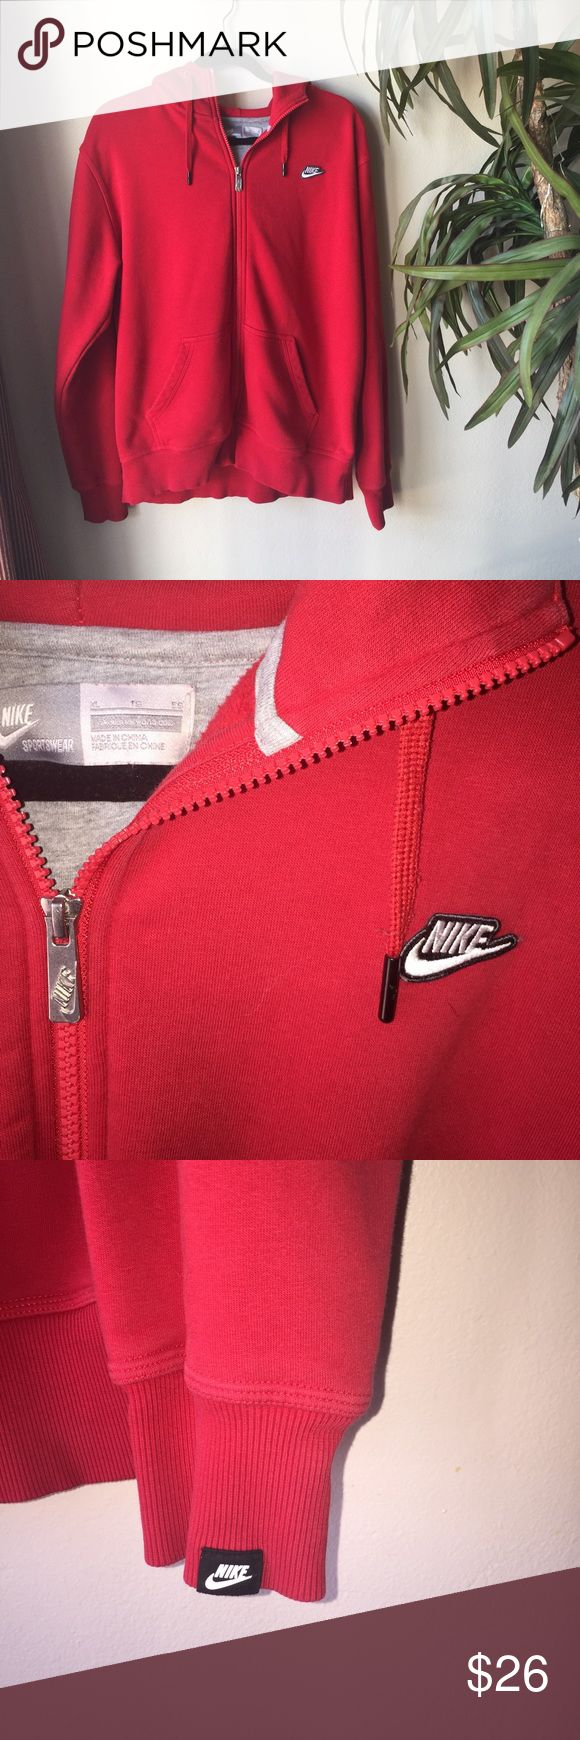 Men red Nike jacket Red Nike jacket. Size extra large, but fits like a large. Nike Jackets & Coats